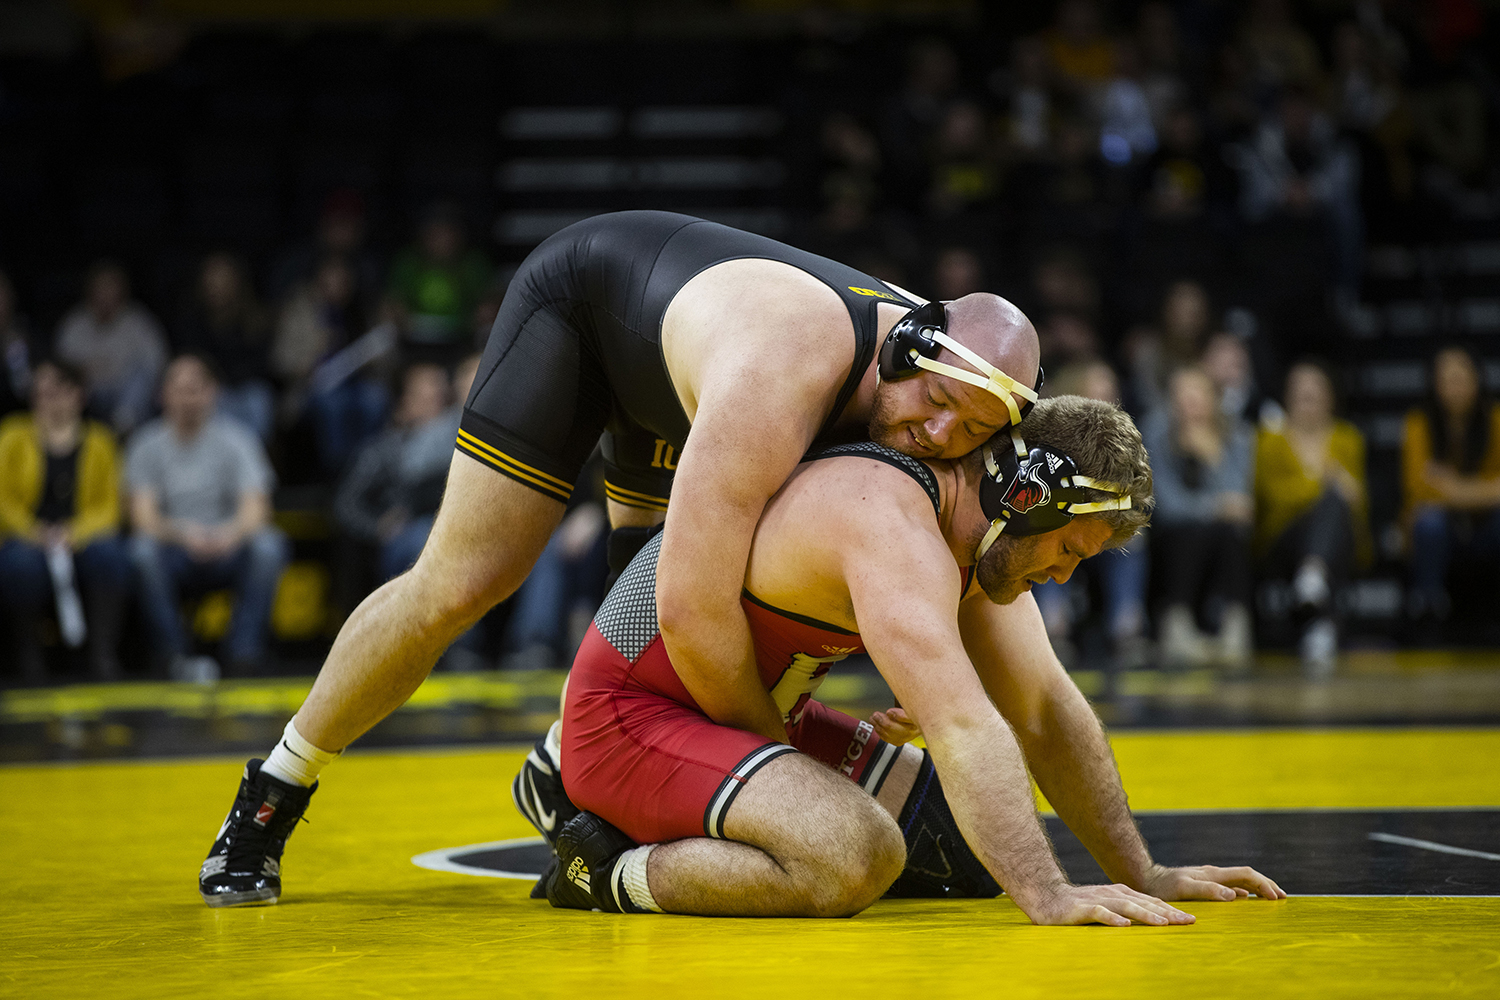 Iowa's #3 Sam Stoll wrestles Rutgers' Christian Colucci  during the Iowa/Rutgers wrestling meet at Carver-Hawkeye Arena on Friday, January 18, 2019. Stoll defeated Colucci, 4-0. The Hawkeyes defeated the Scarlet Knights, 30-6.